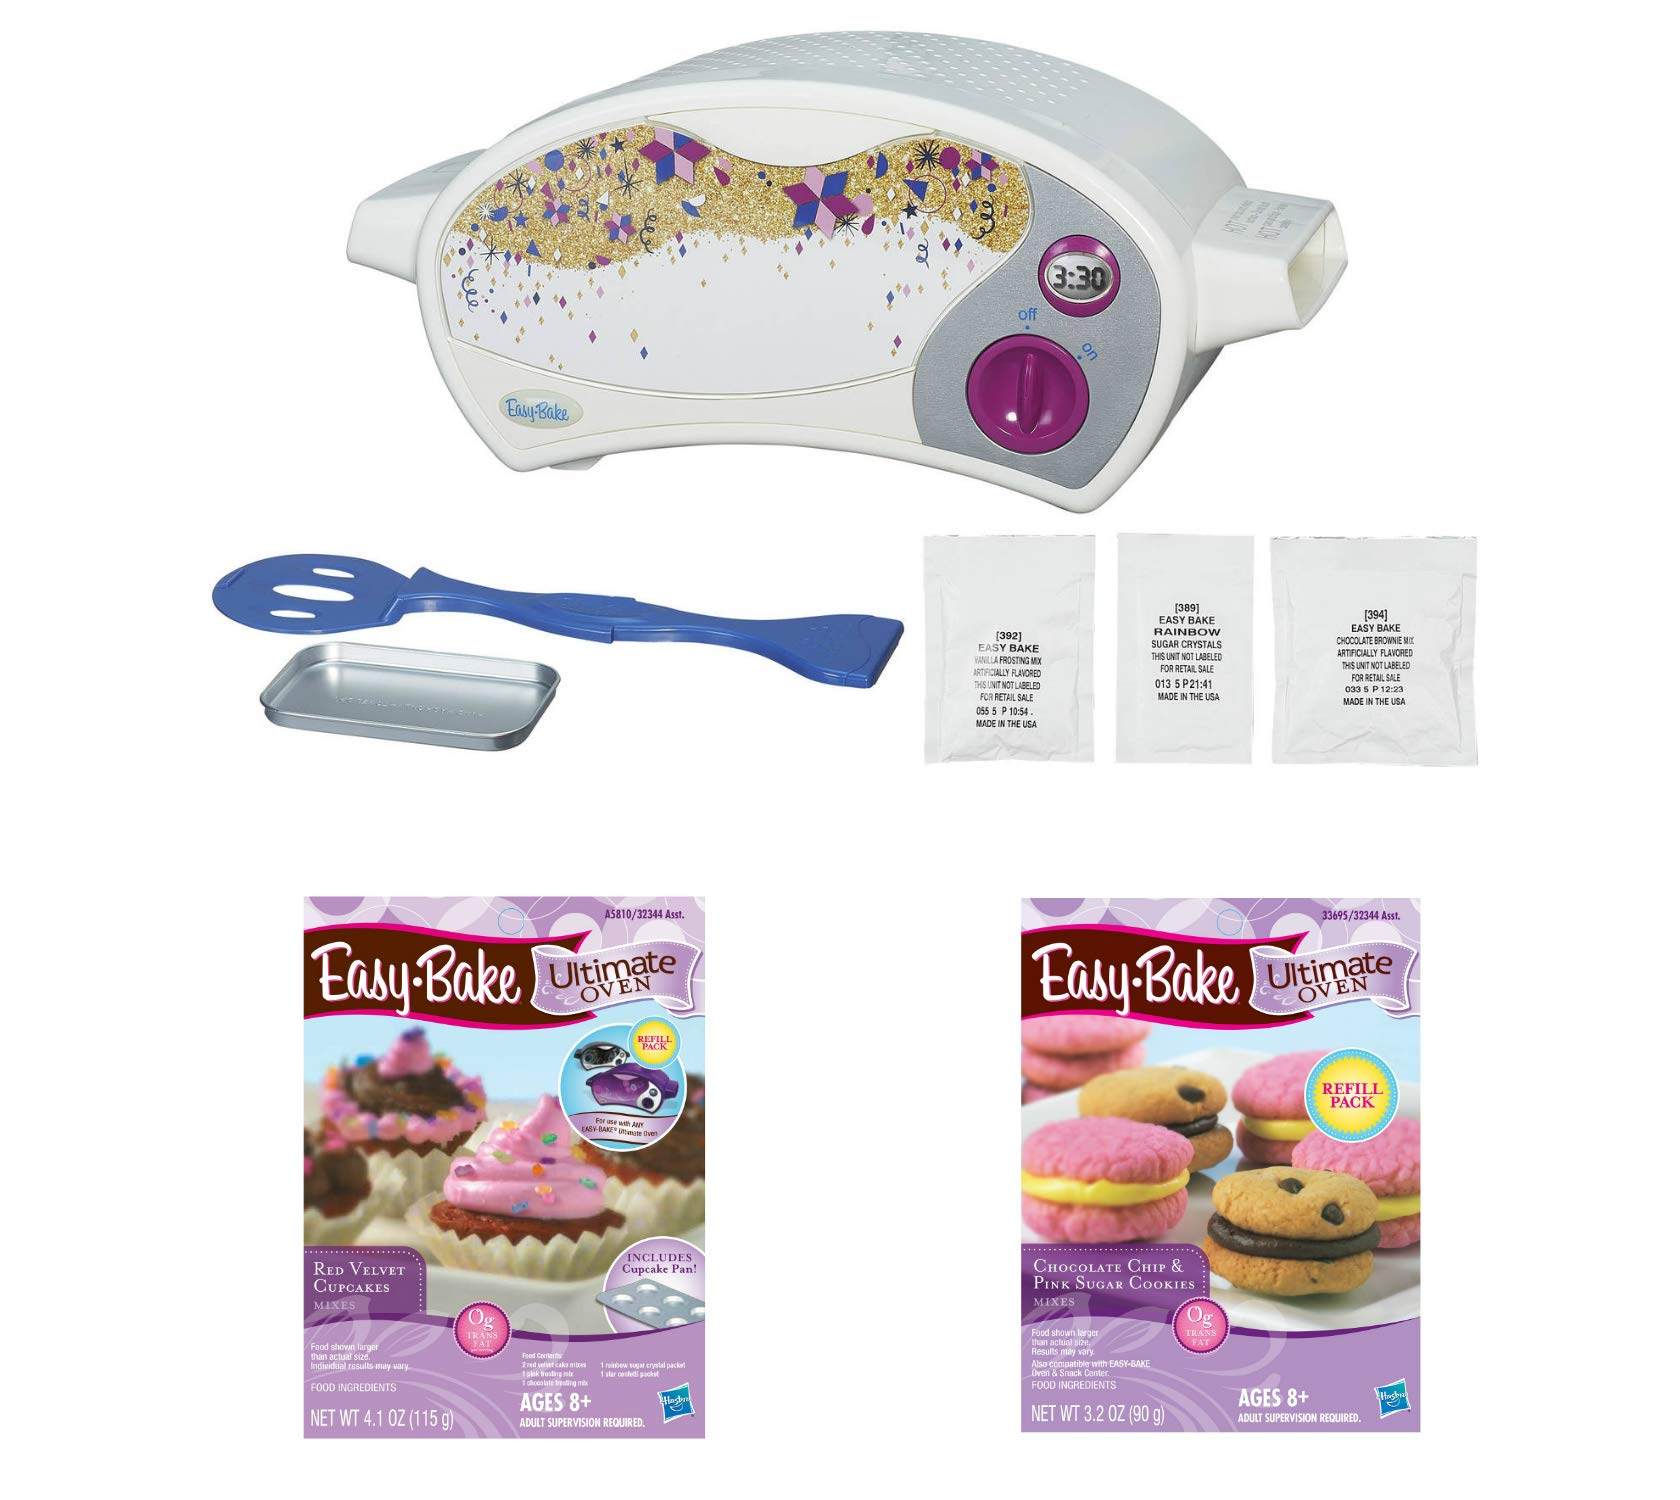 Easy Bake Oven Star Edition + Red Velvet Cupcakes + Chocolate Chip and Sugar Cookies Refill Setl. Set of 3 Items by Easy Bake